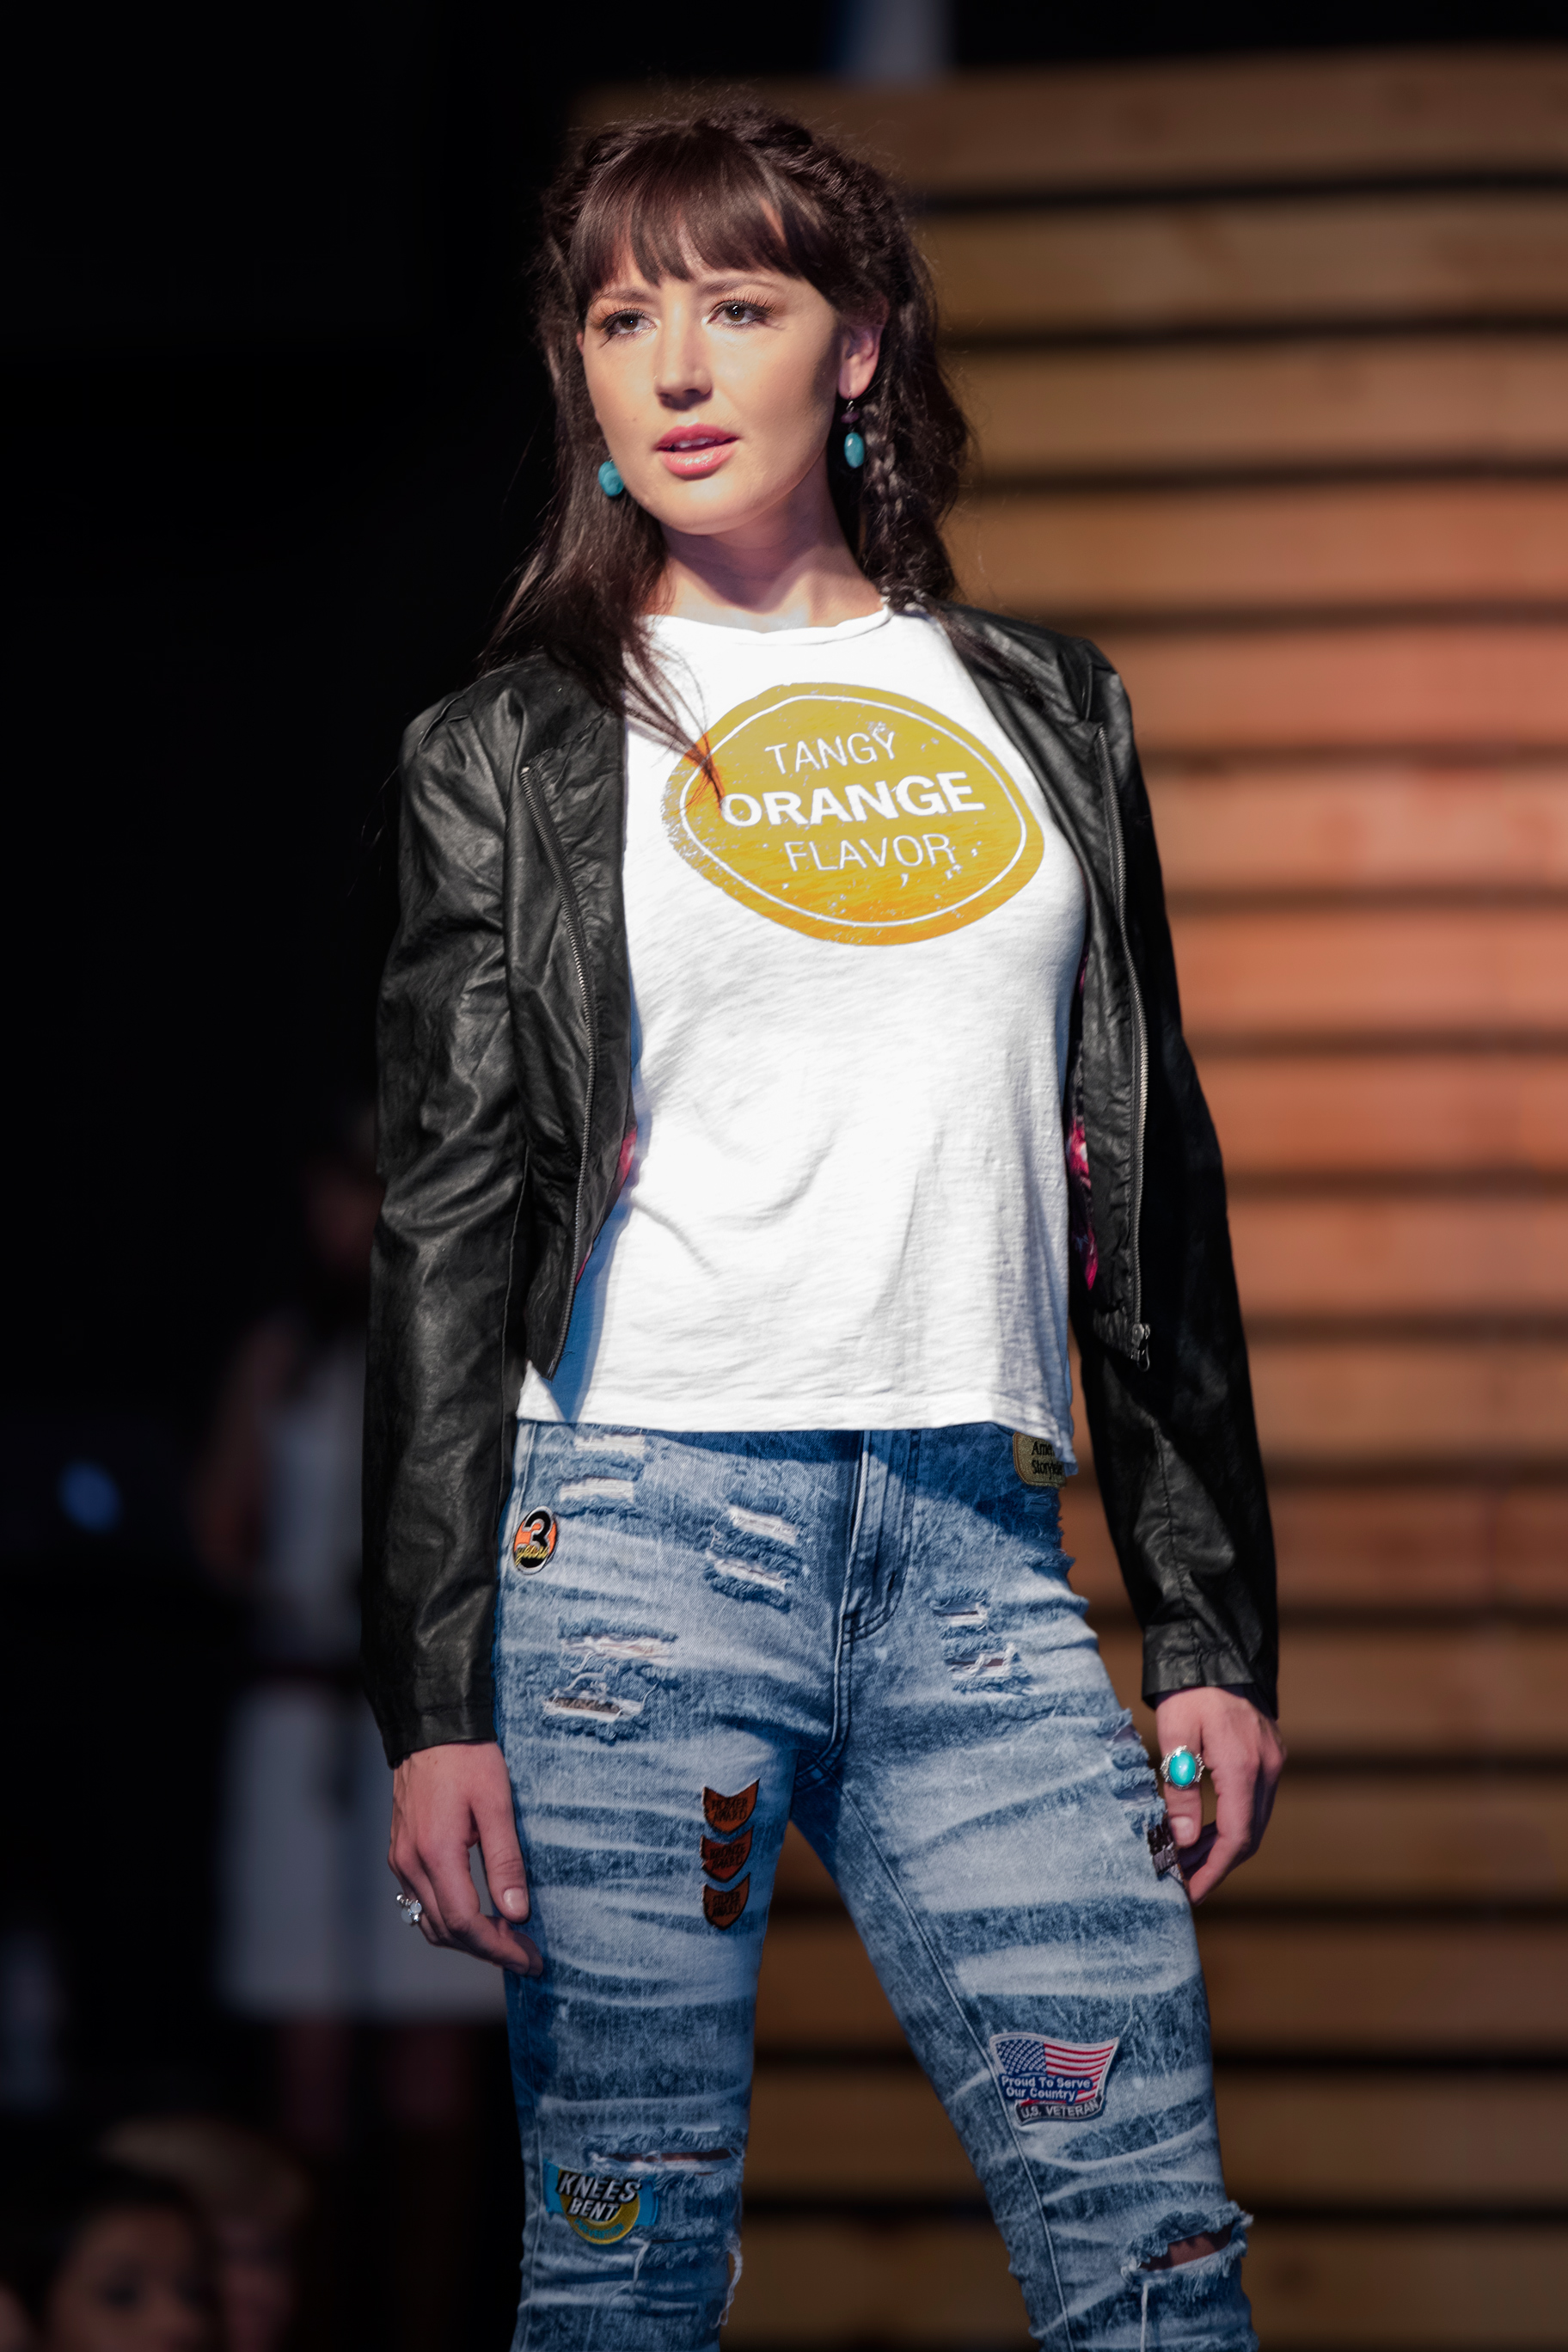 Mission Wear Upcycled Patchwork Fashion Show - 003.jpg